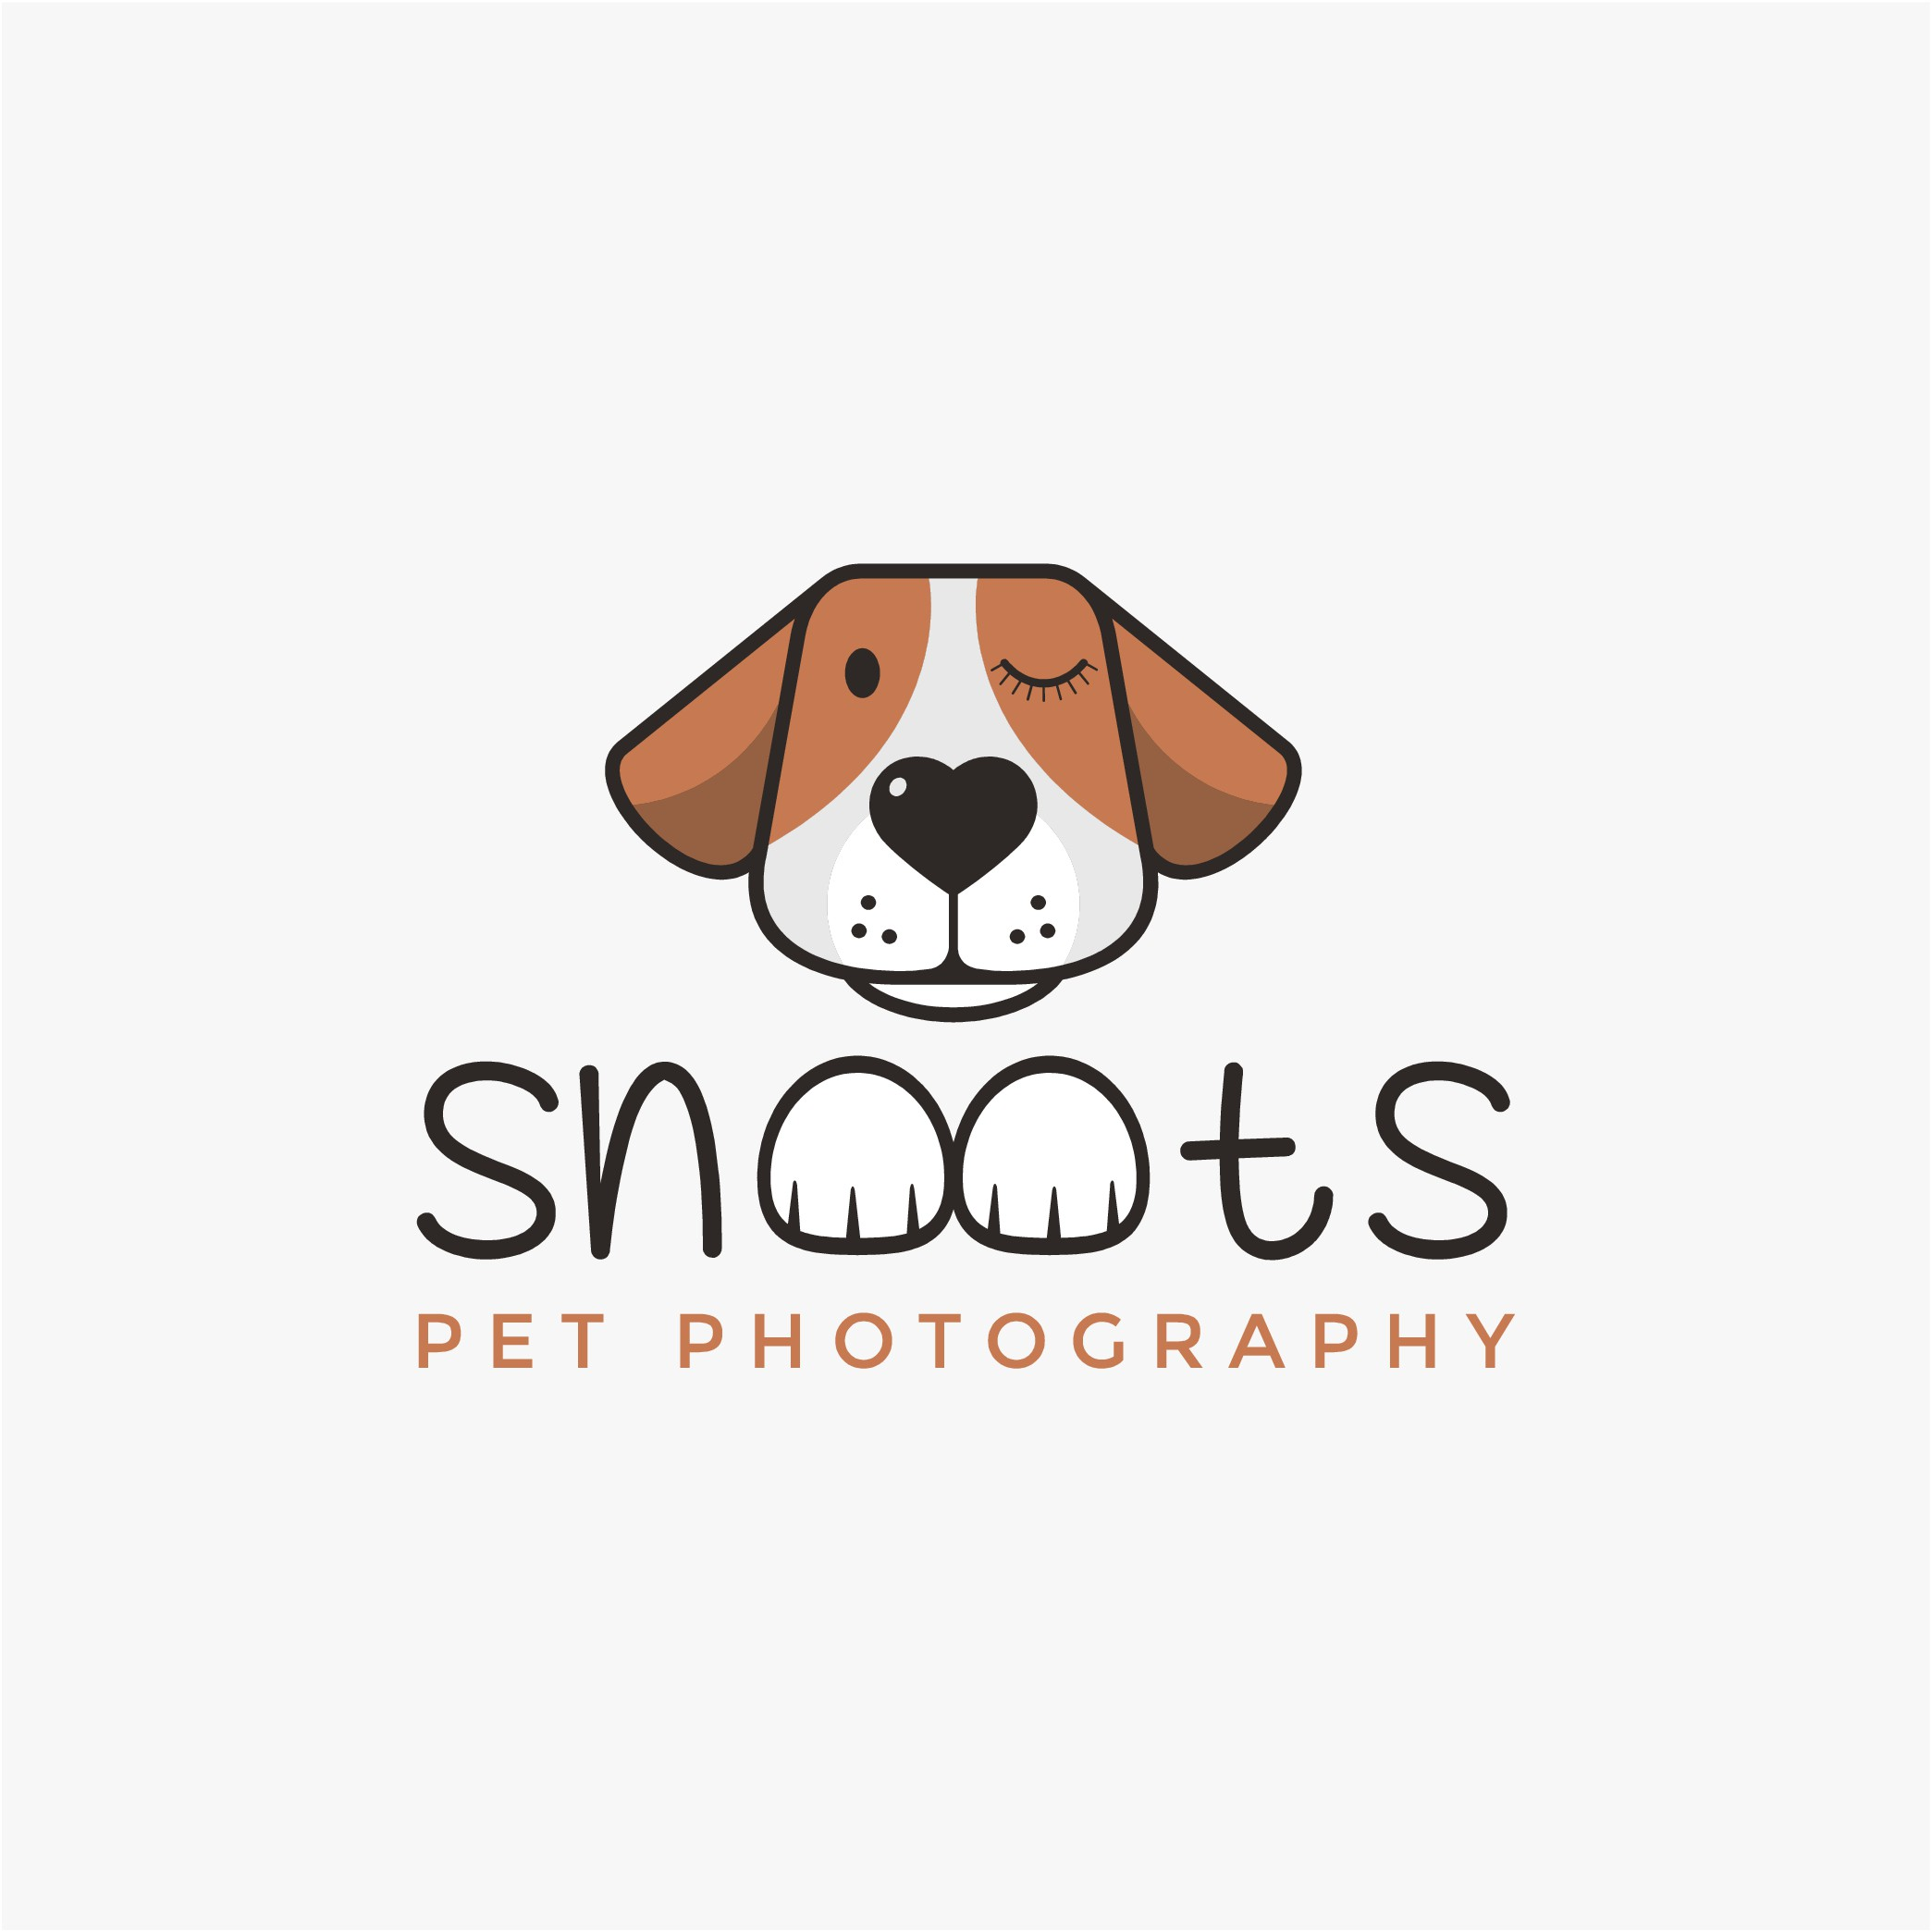 Need a snoot to boop! Fun, energetic pet portrait business looking for mascot logo!